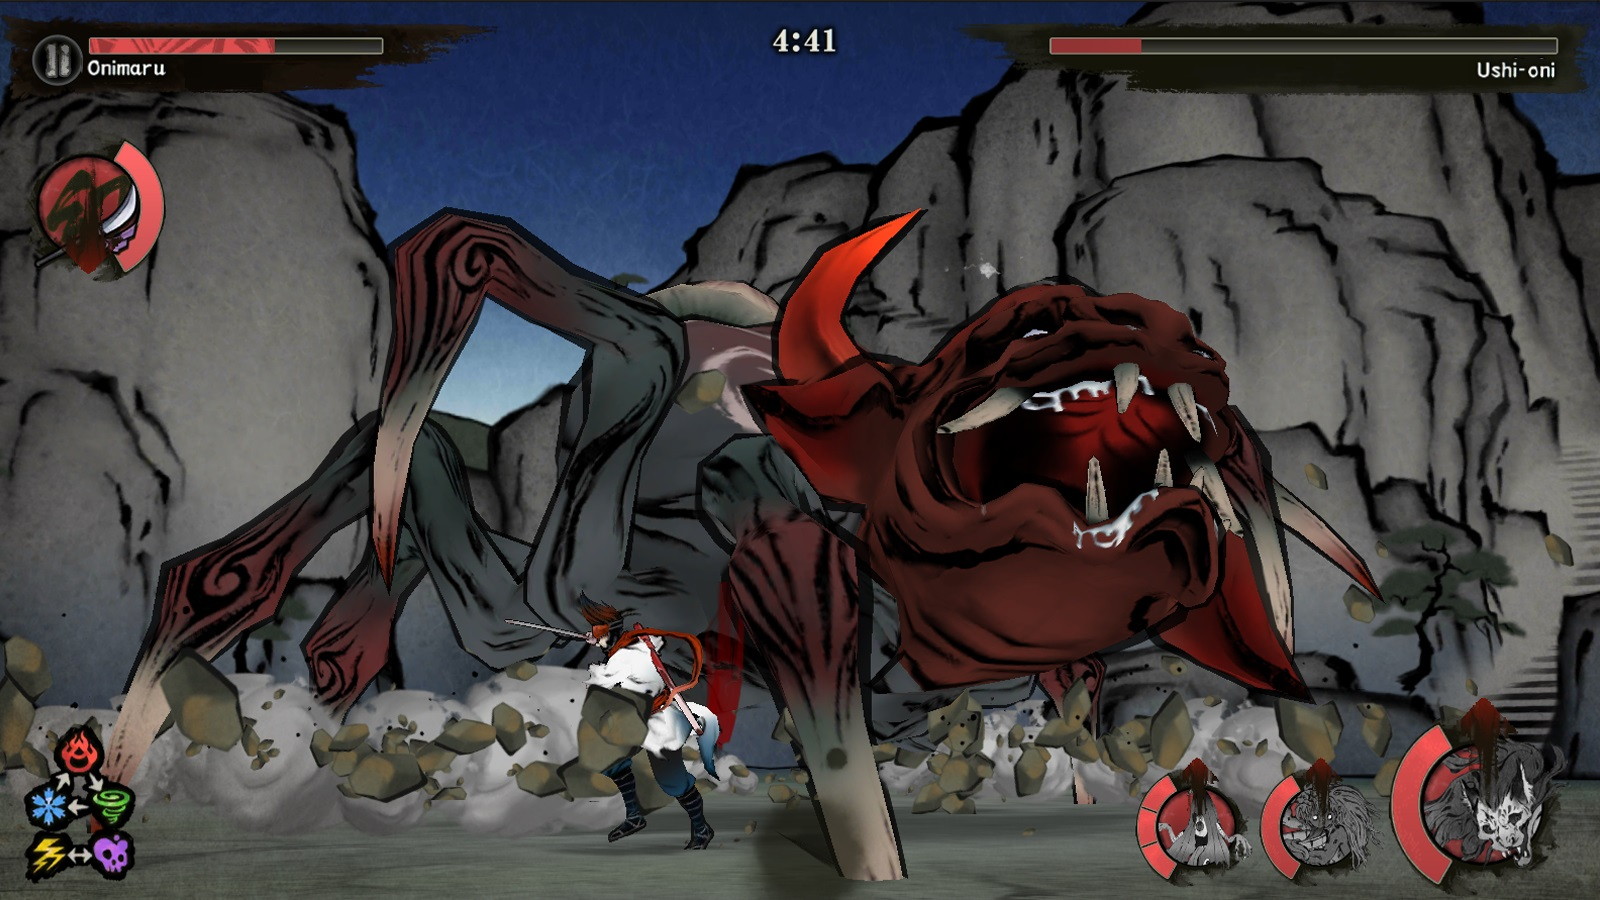 Platinum Games And DeNA Announce Samurai Action Game World Of Demons